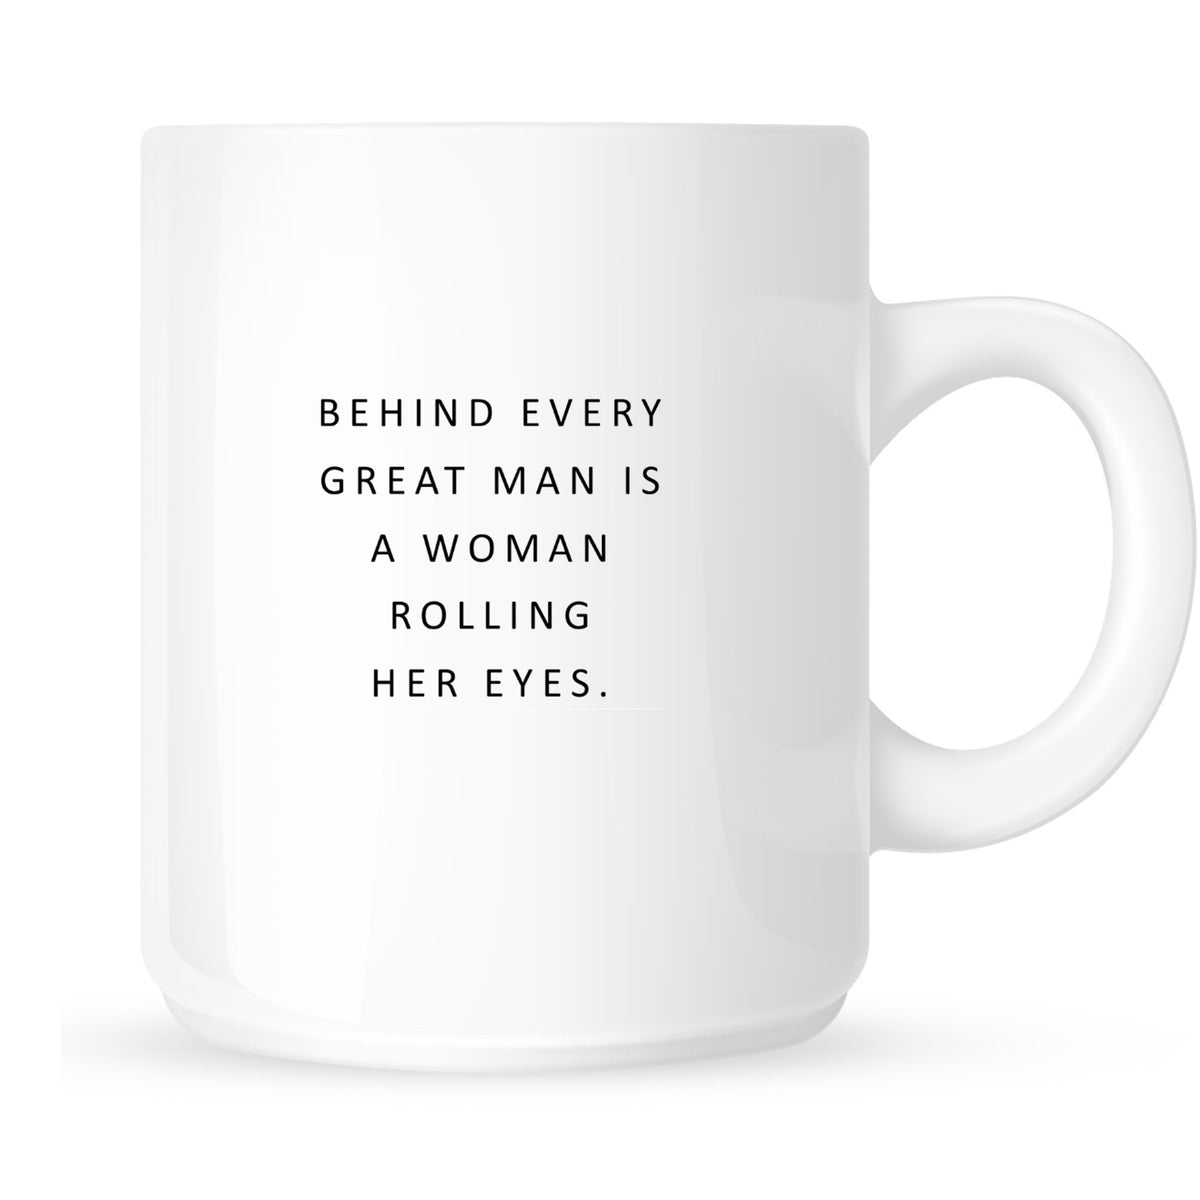 Mug - Behind Every Great Man is a Woman Rolling Her Eyes